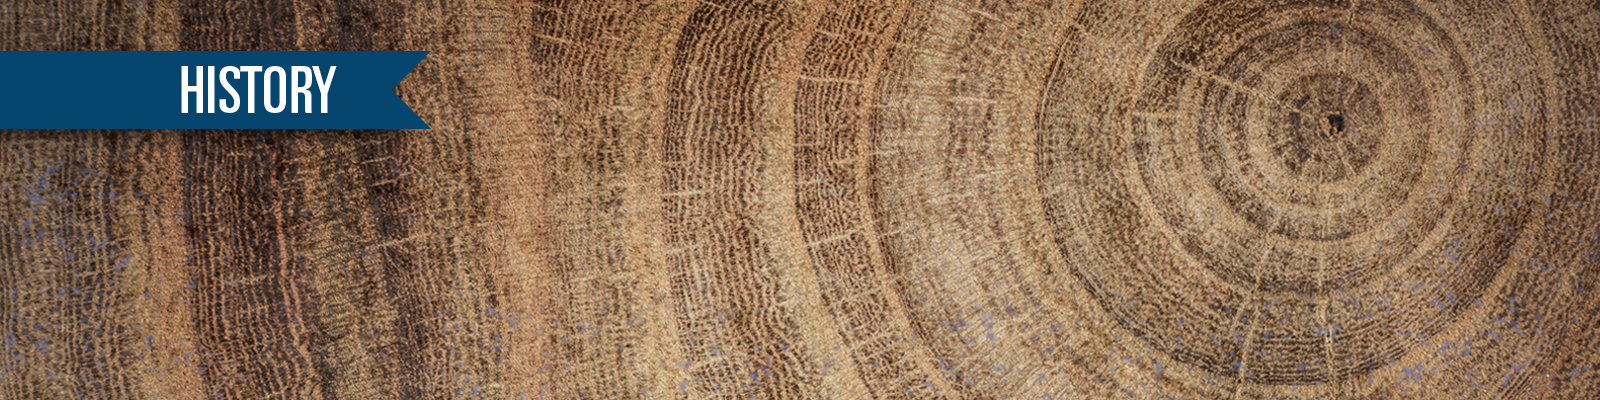 Tree Rings Cross section